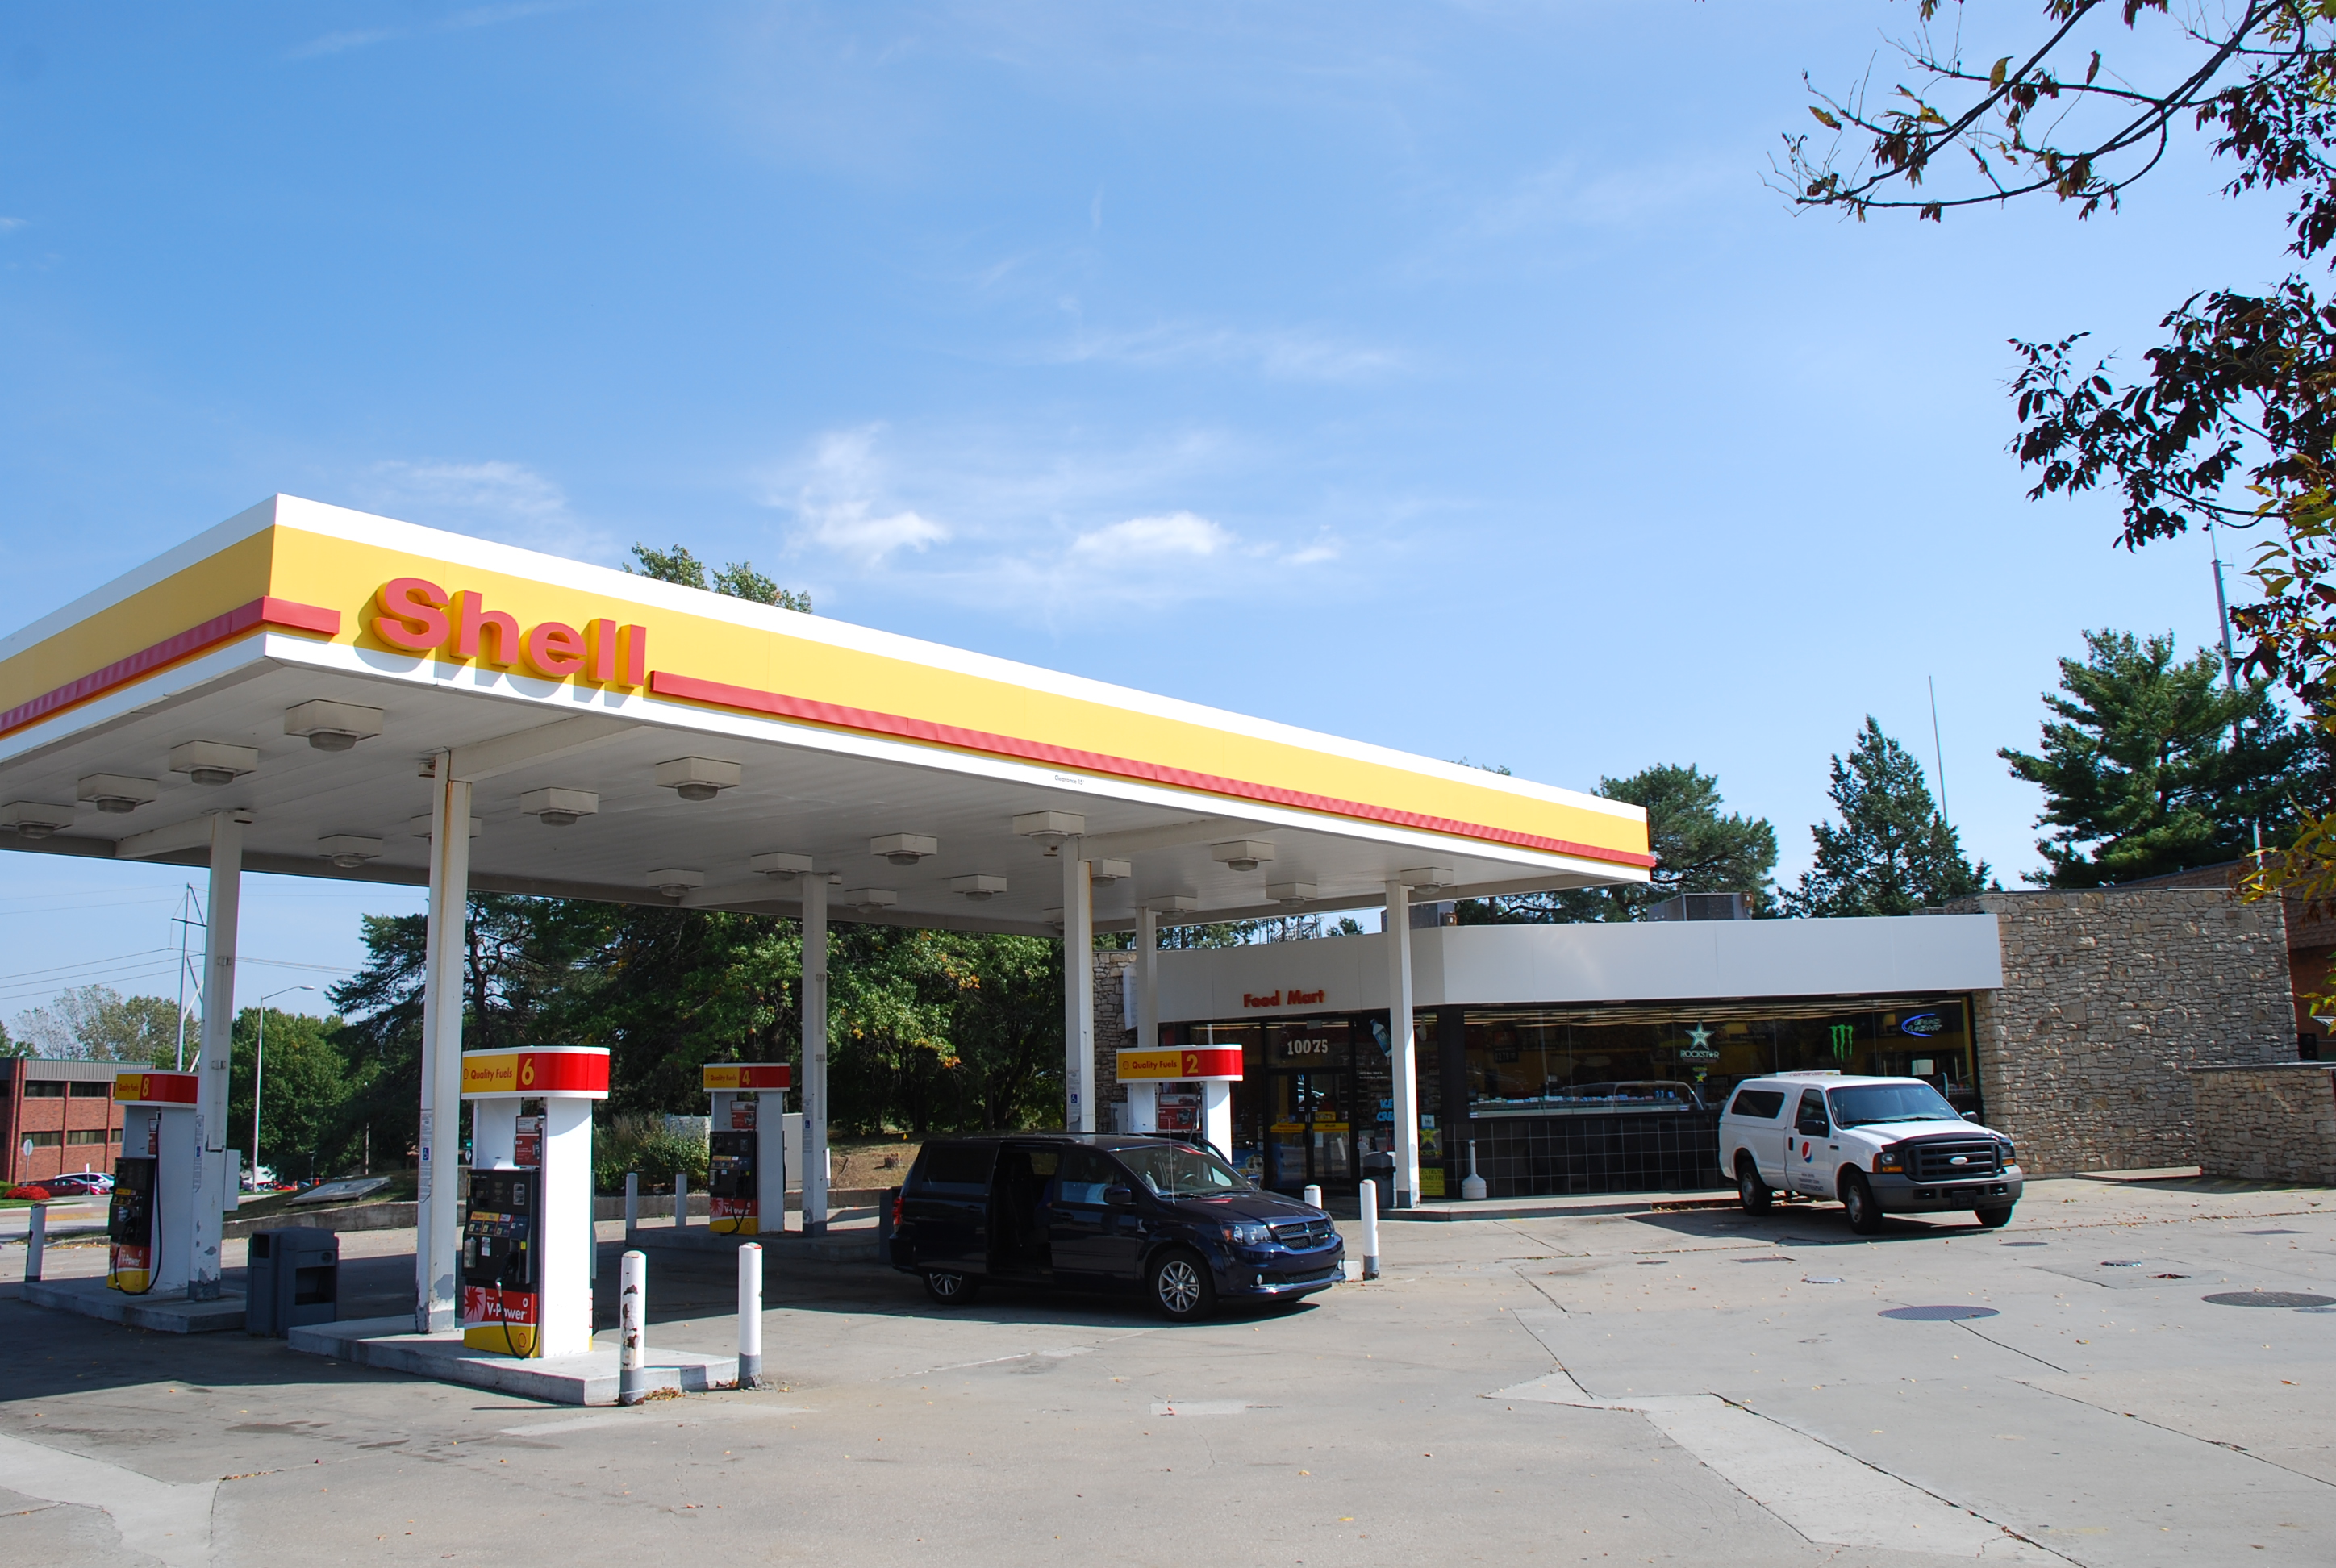 Shell Gas Station & C Store